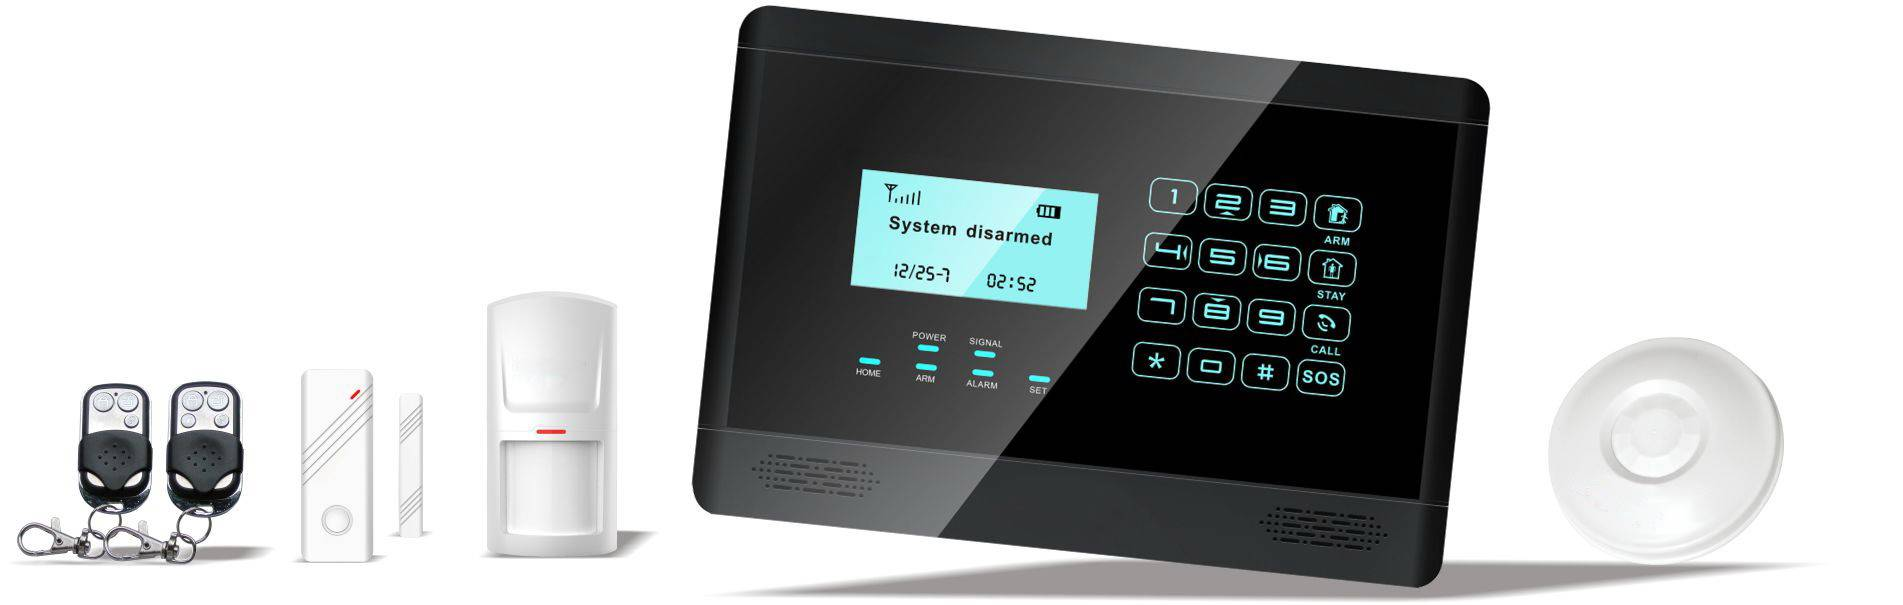 PSTN Auto dial alarm system with detector